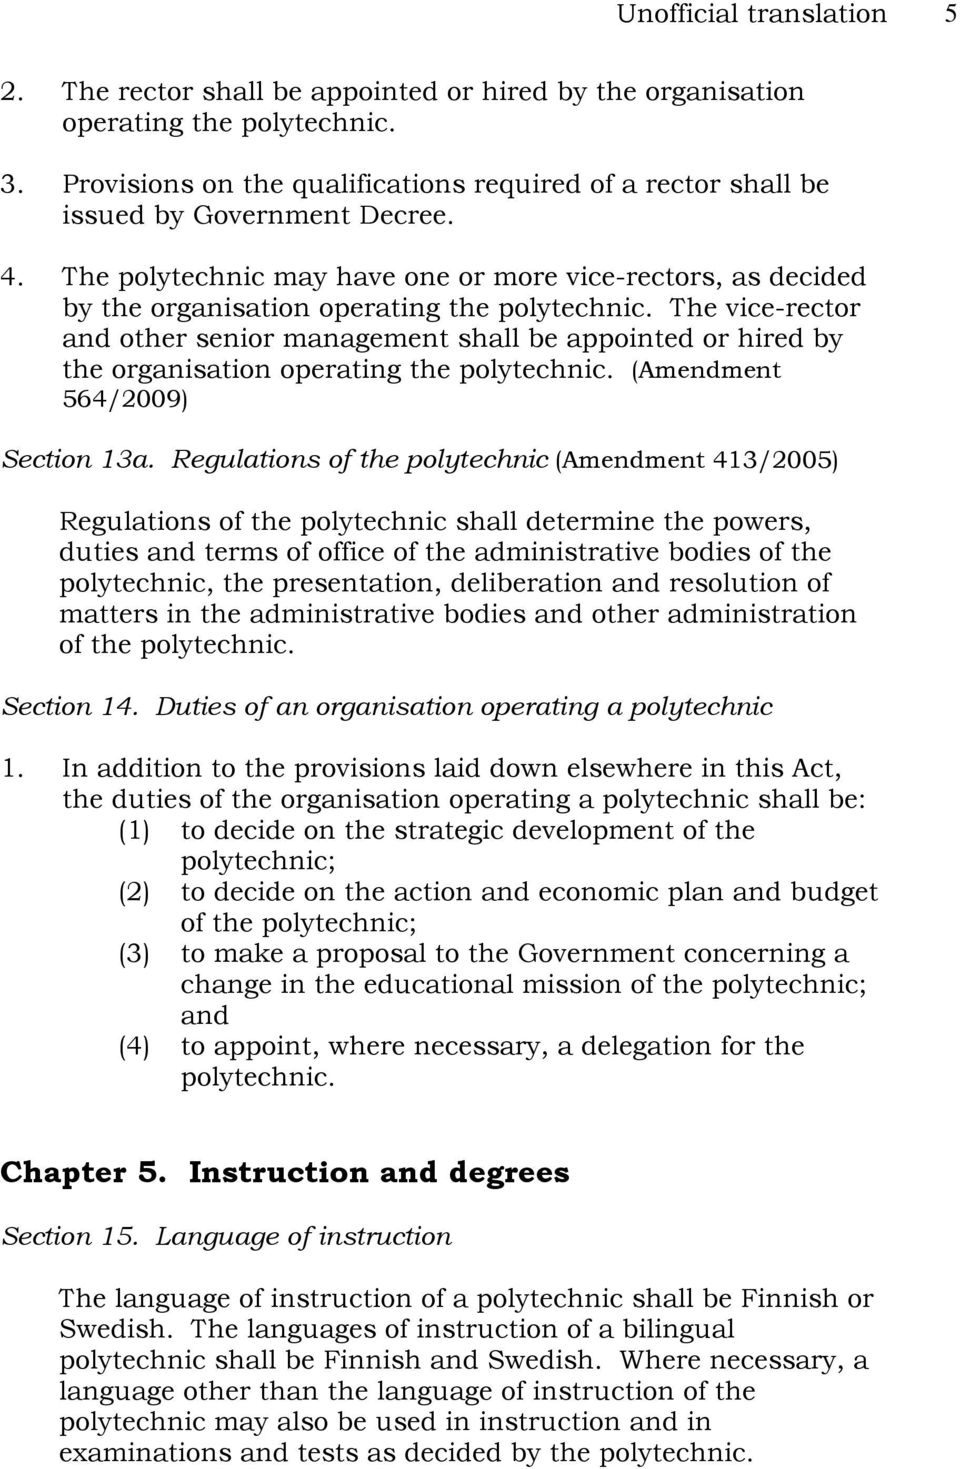 The polytechnic may have one or more vice-rectors, as decided by the organisation operating the polytechnic.